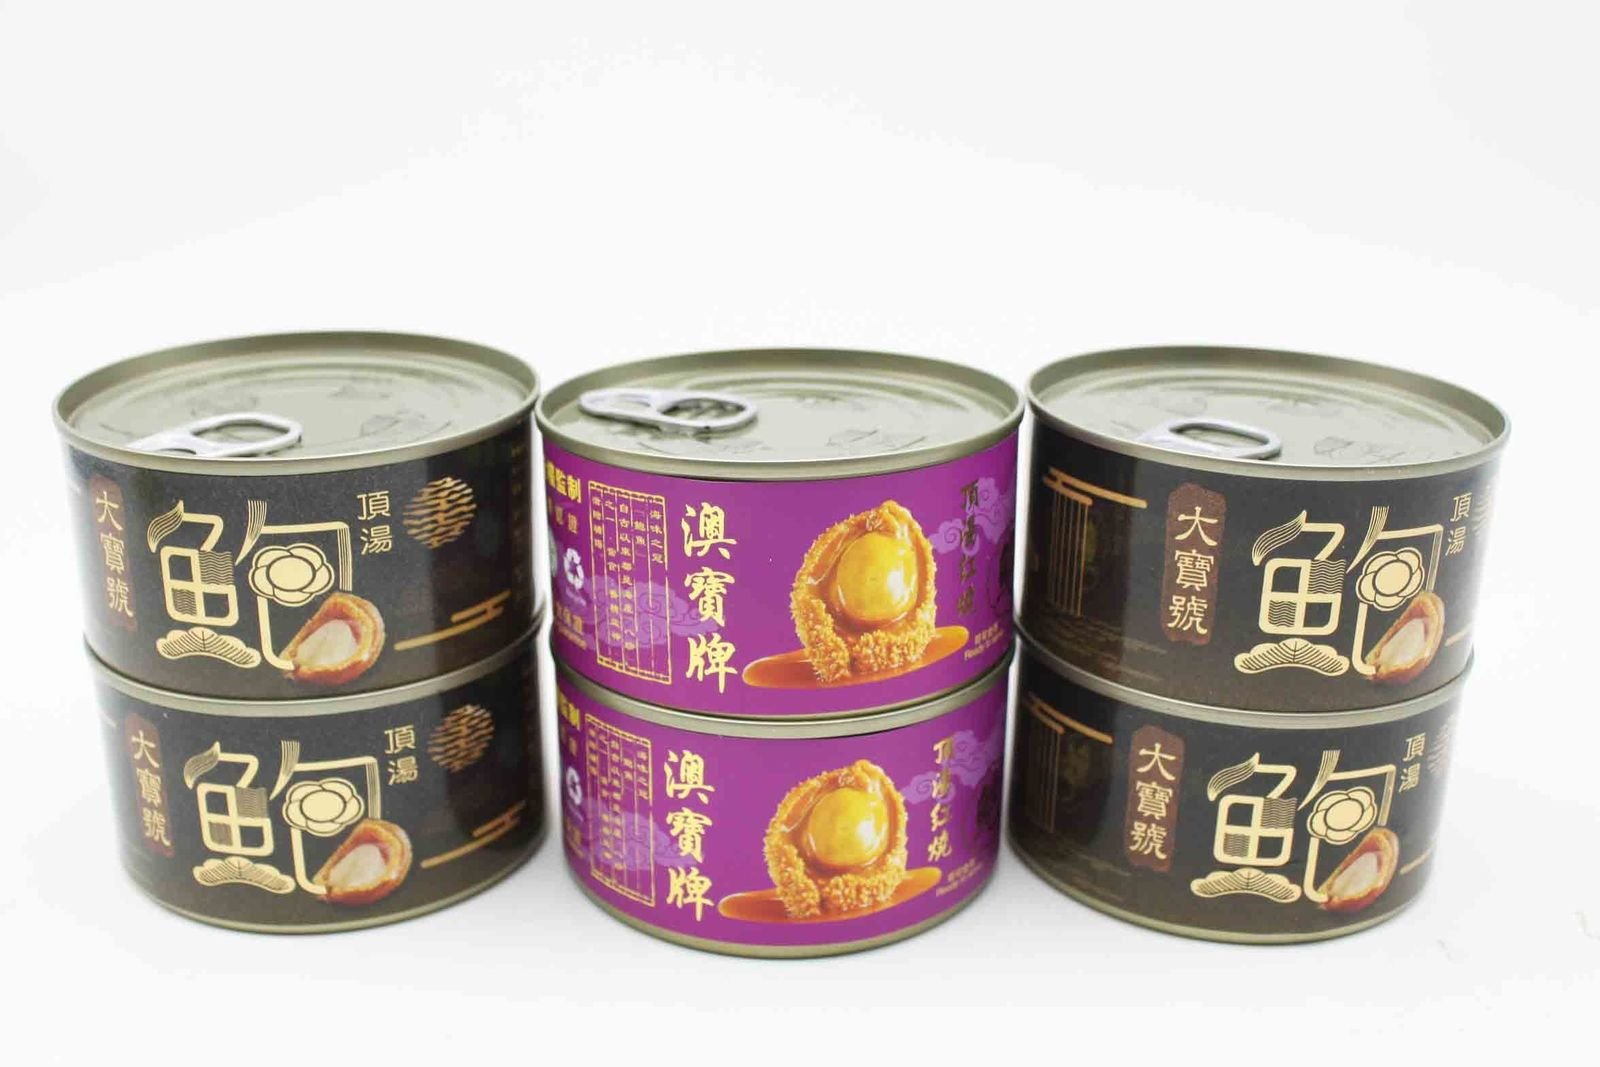 China Good Food Set-2 Canned abalone set 4 pieces & 6 pieces Total 6 Cans Free Airmail by China Good Food (Image #2)